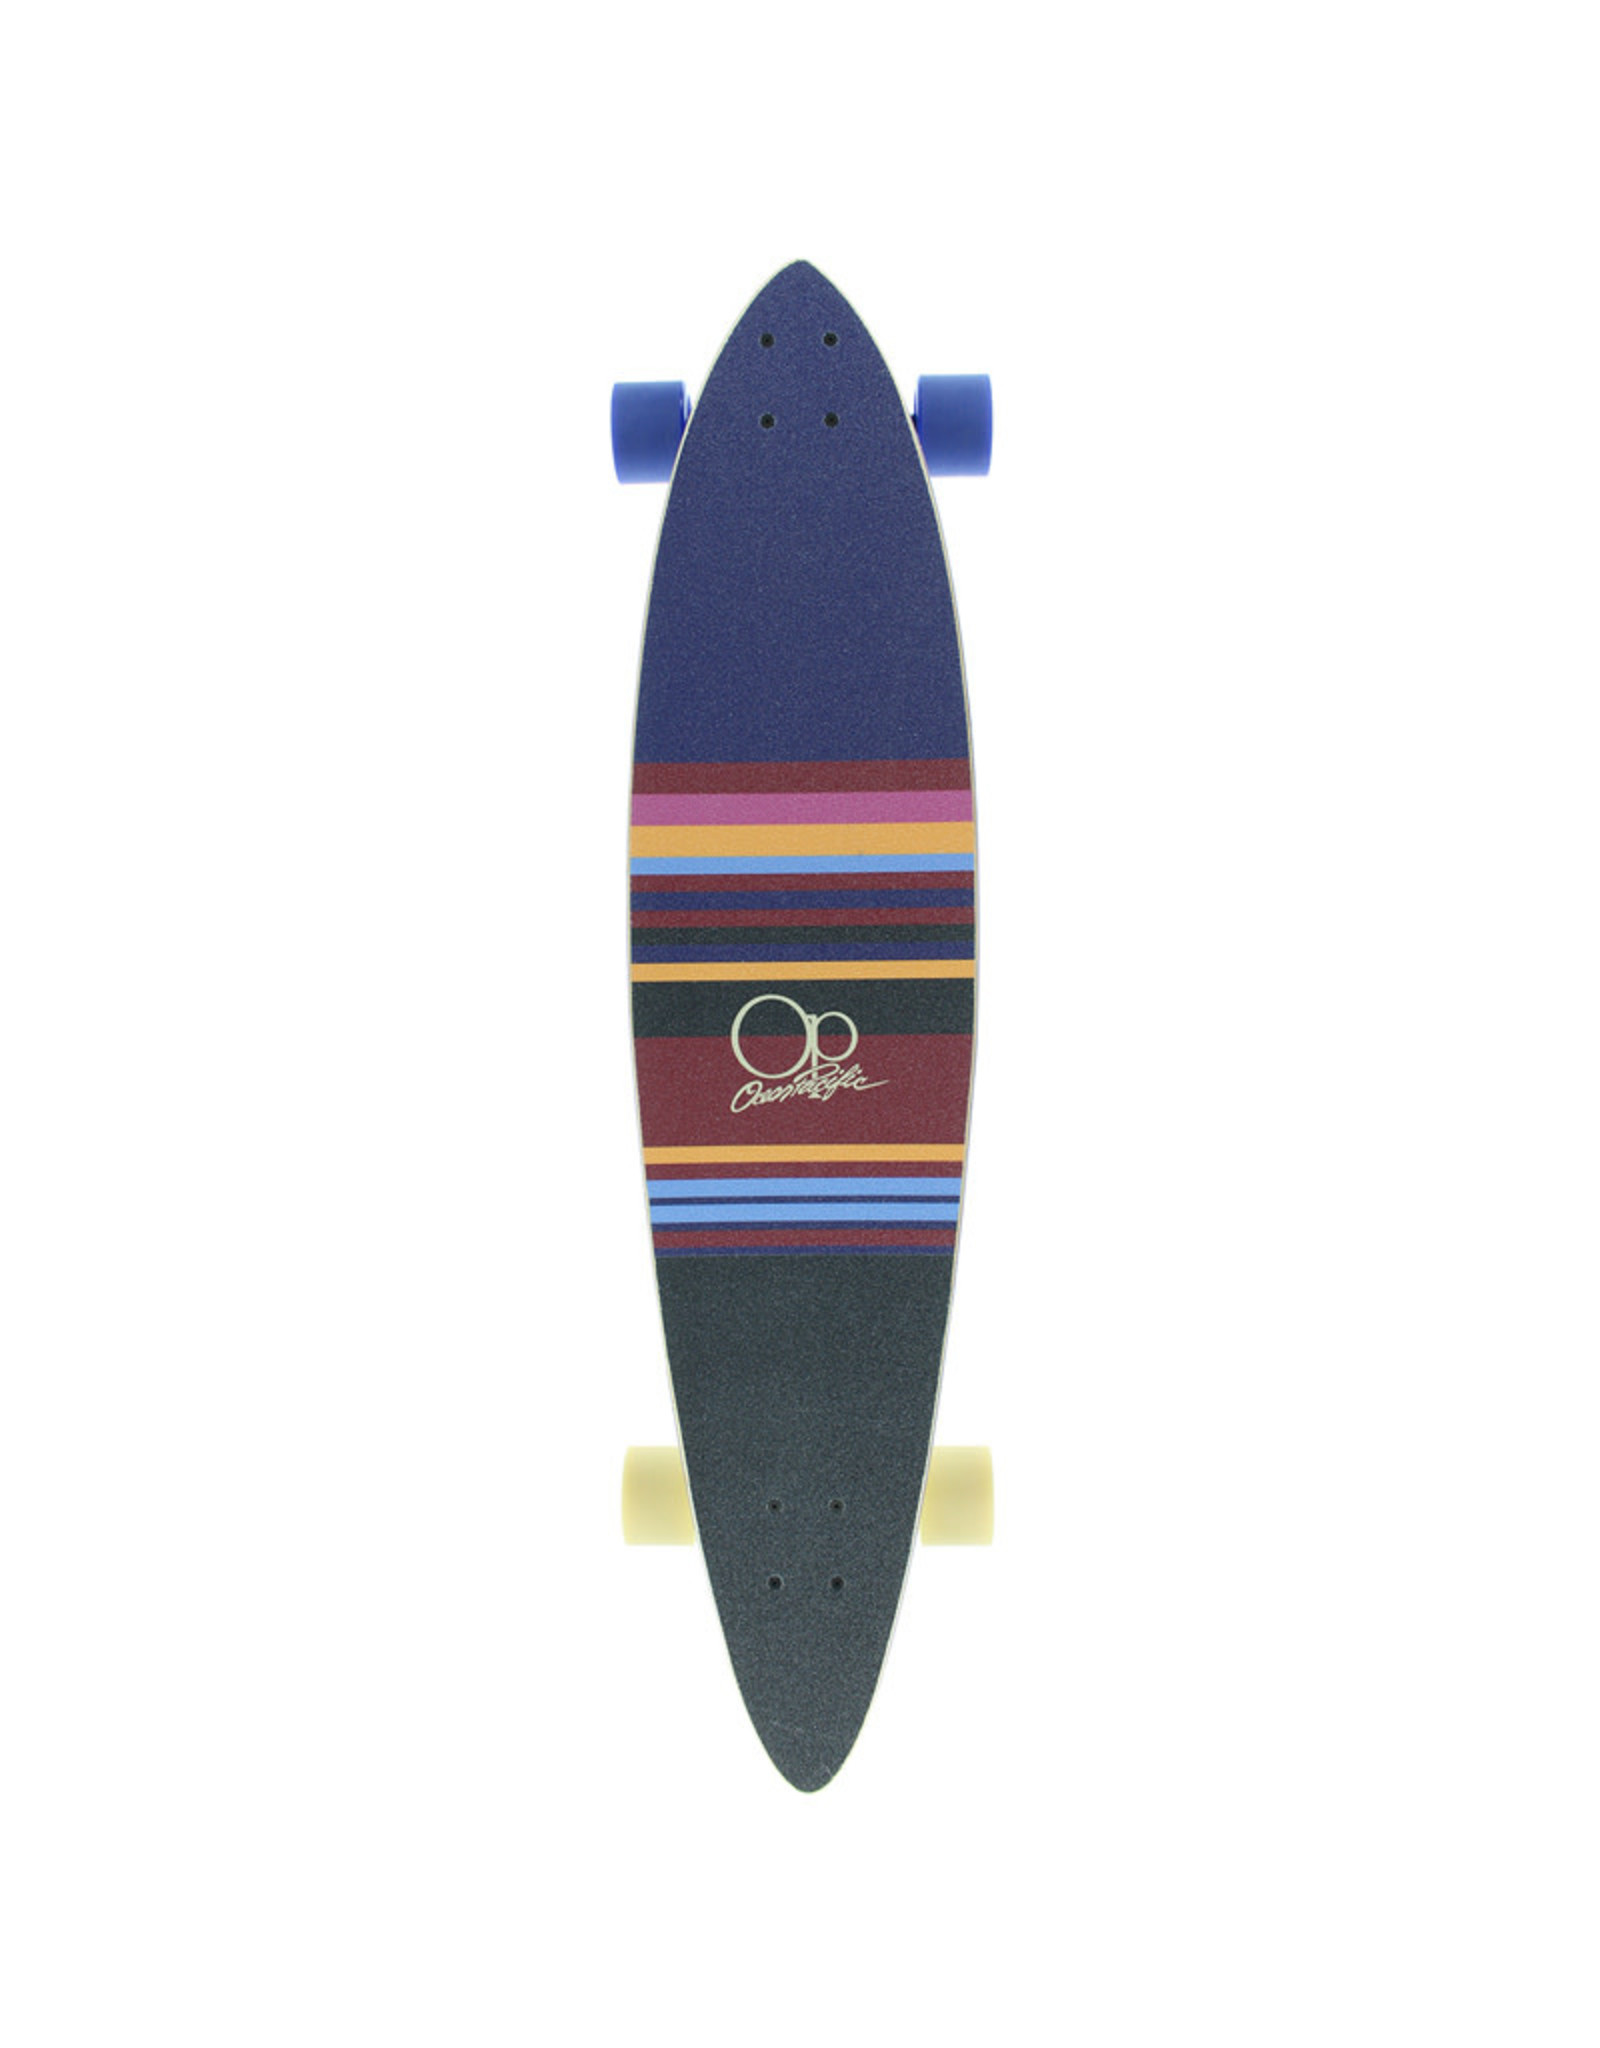 Ocean Pacific Ocean Pacific 40 8.75 Swell Pin Tail Navy/Off White 40 8.75